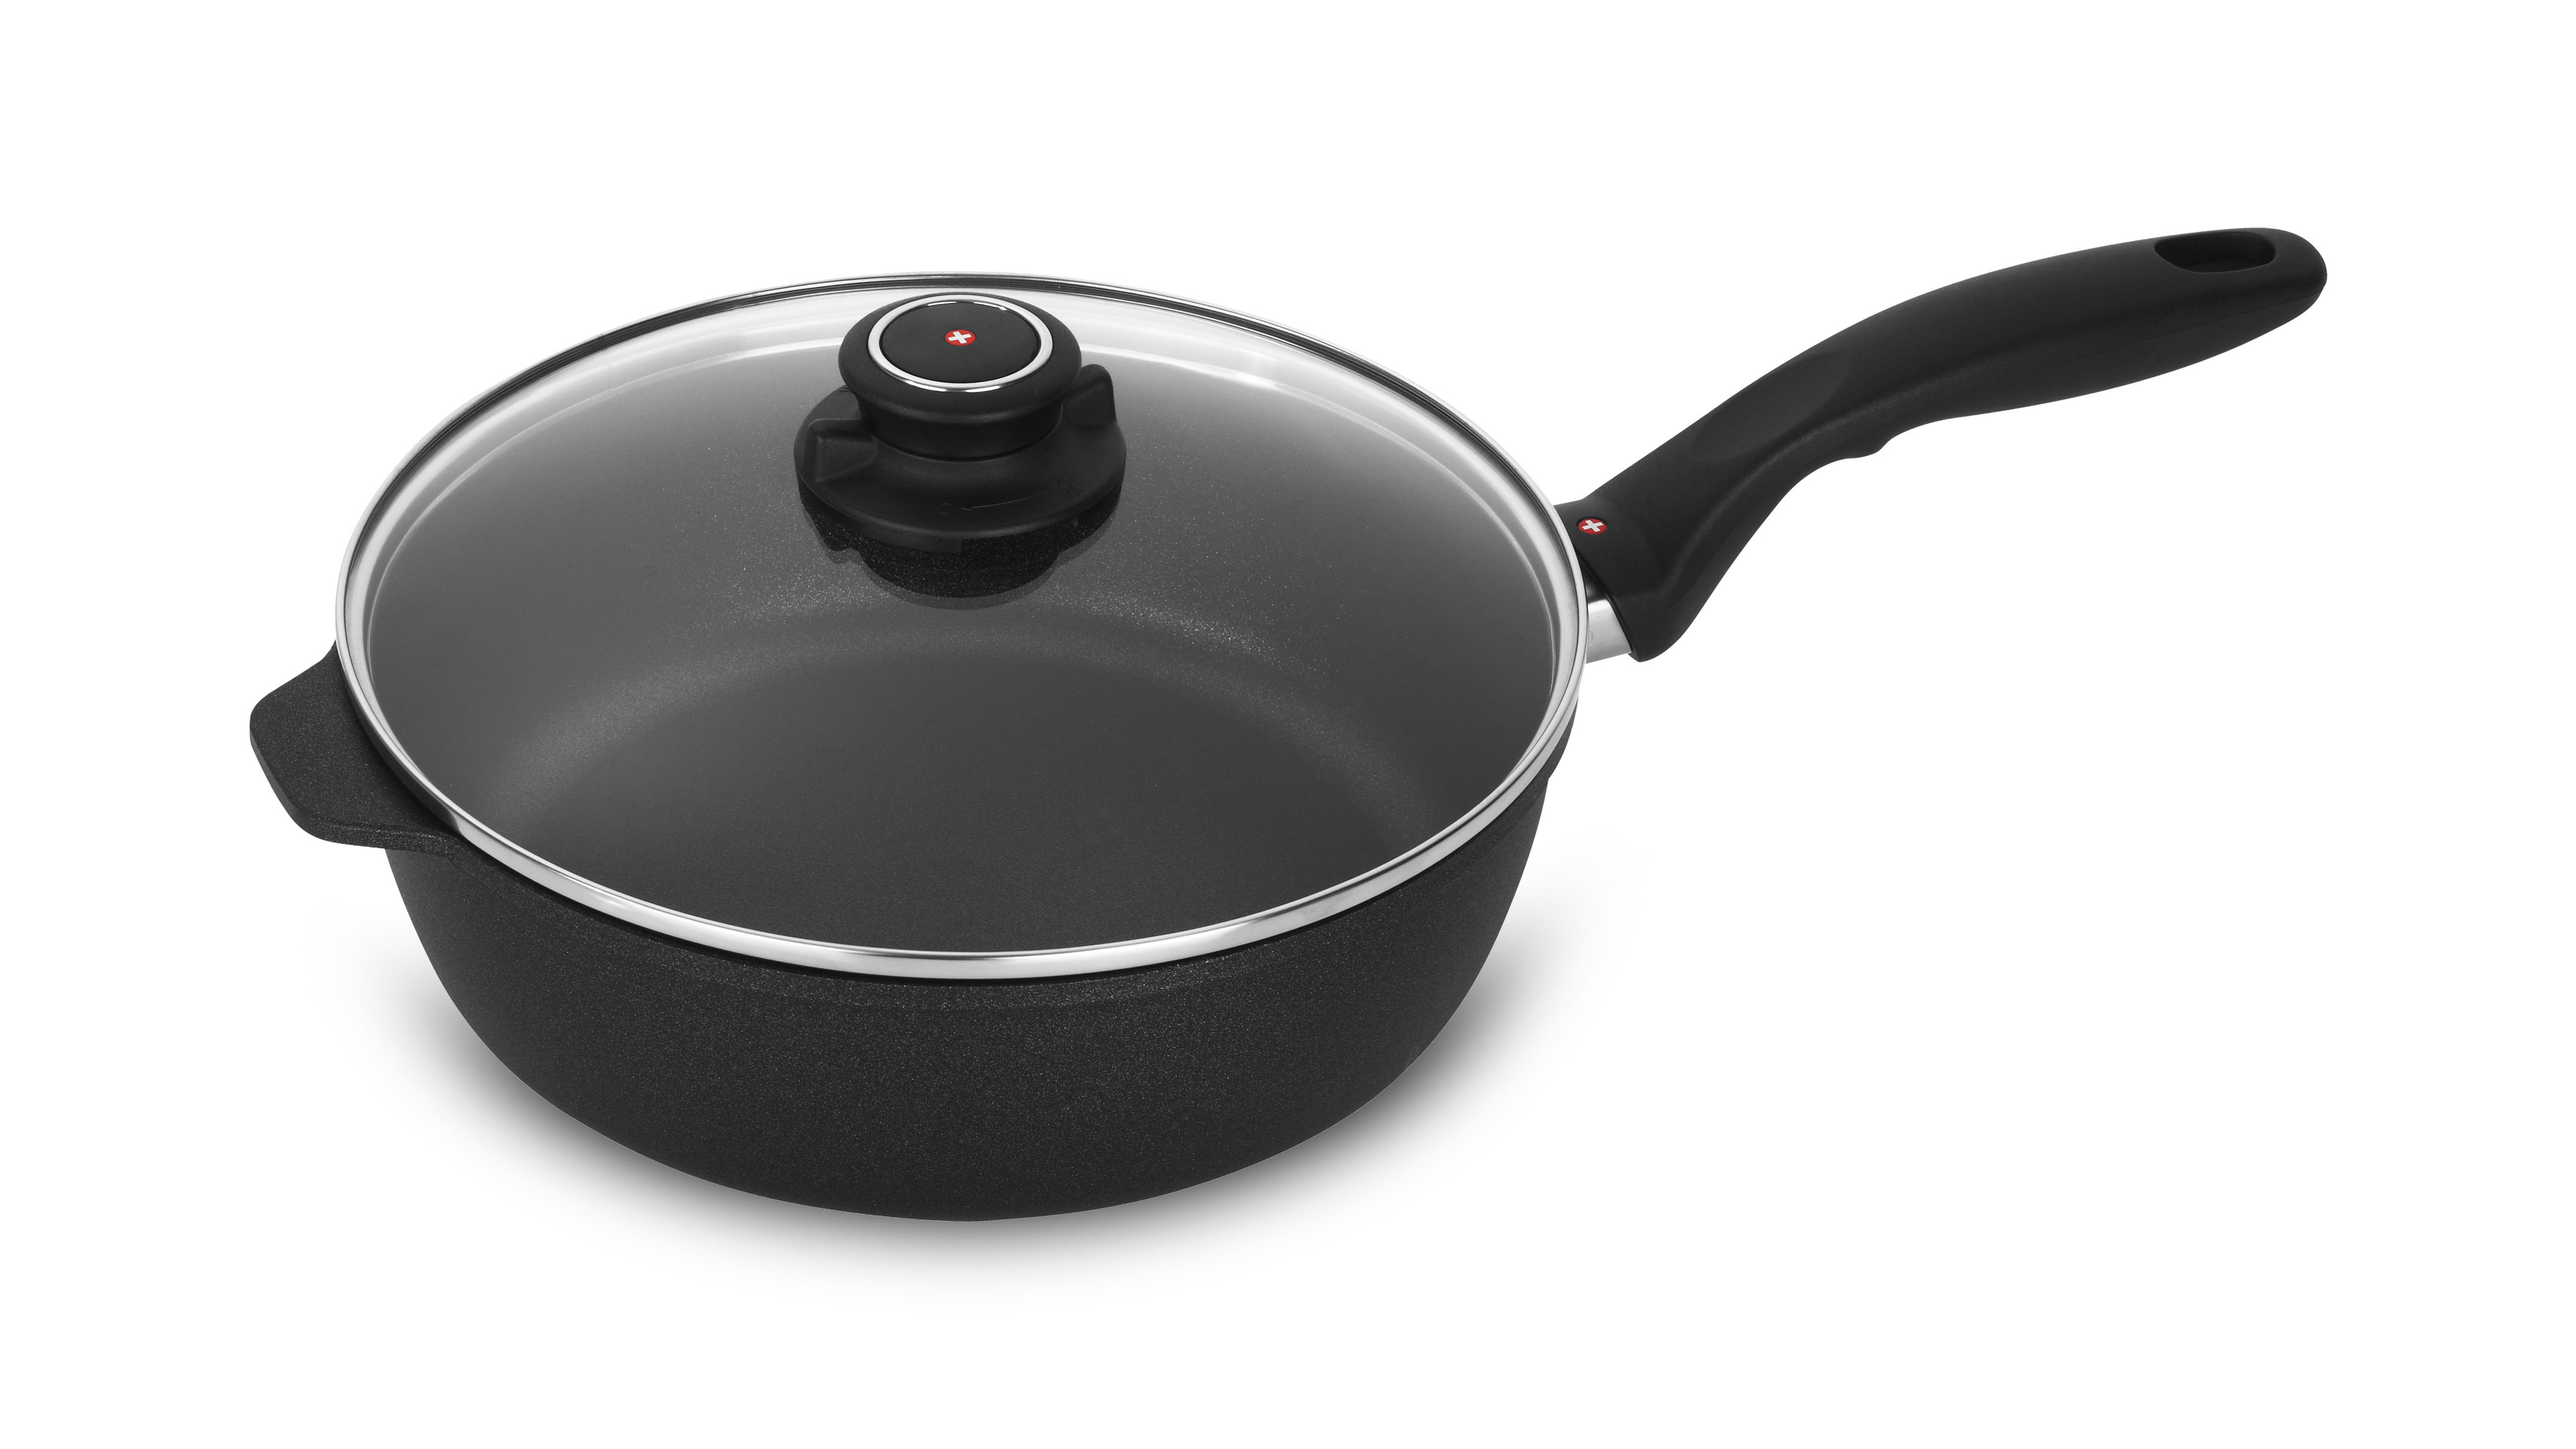 Swiss Diamond Xd Nonstick Induction Saute Pan With Lid 3